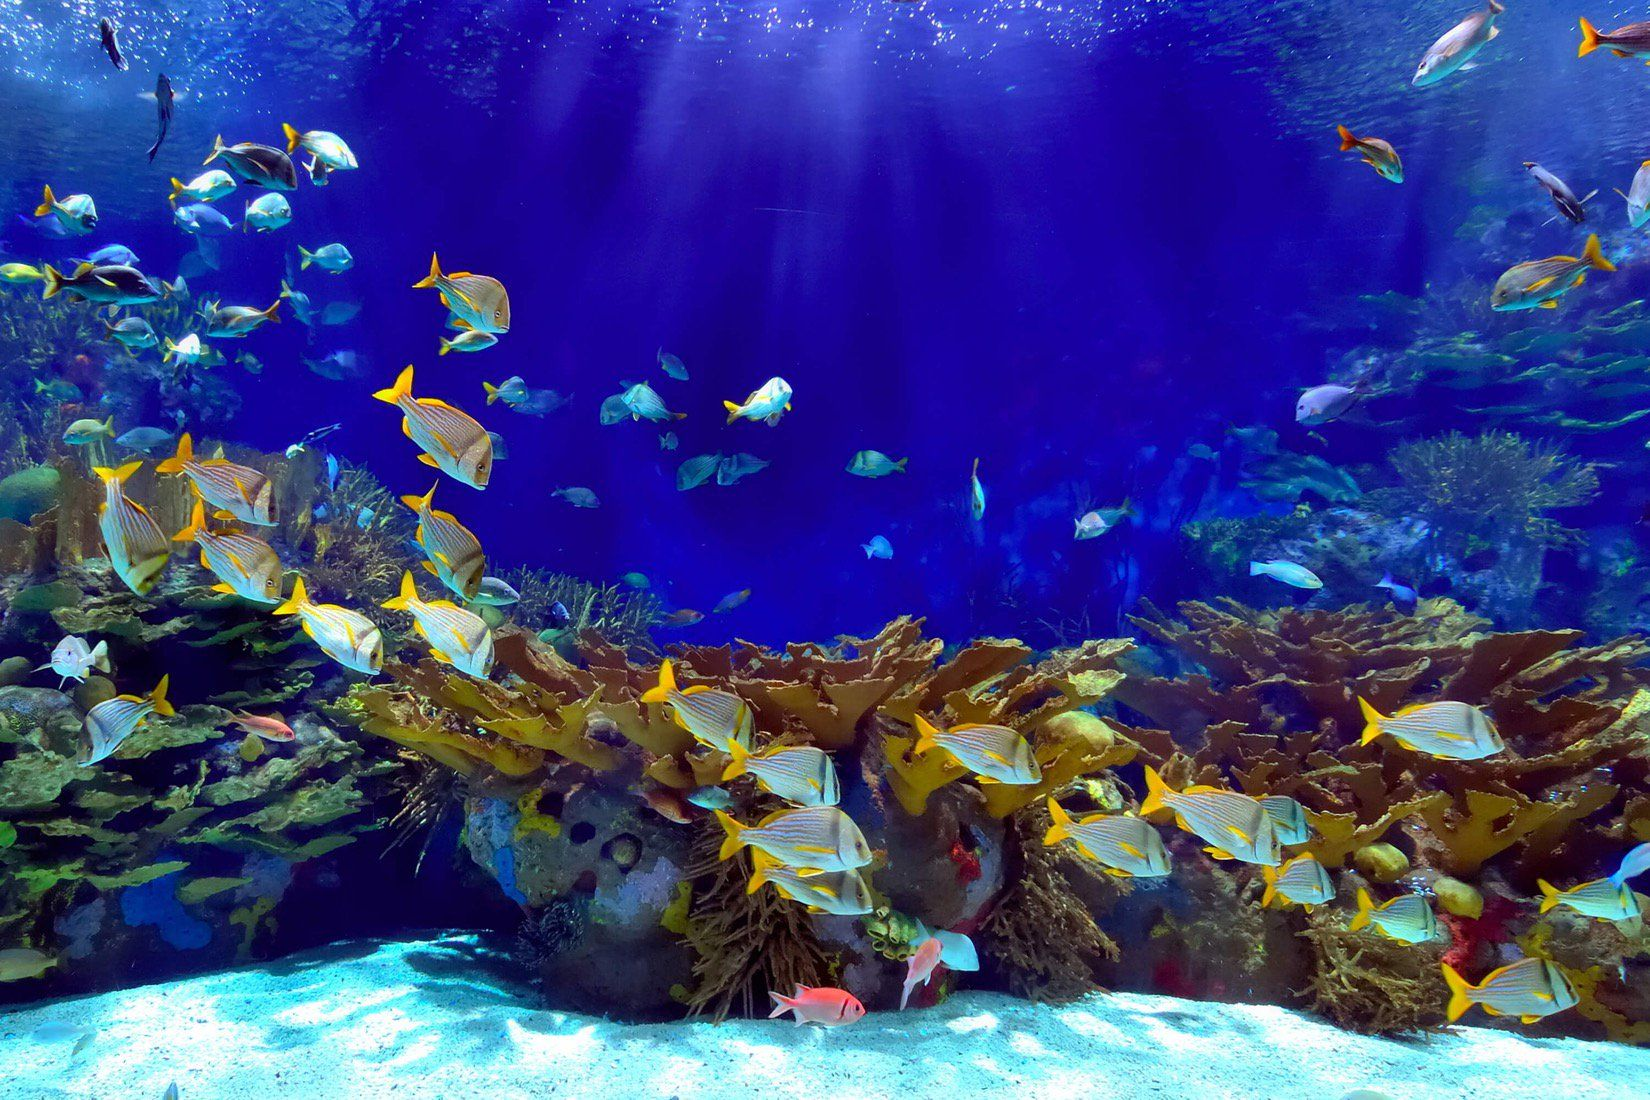 Deep Blue Underwater Wallpaper Mural (With images